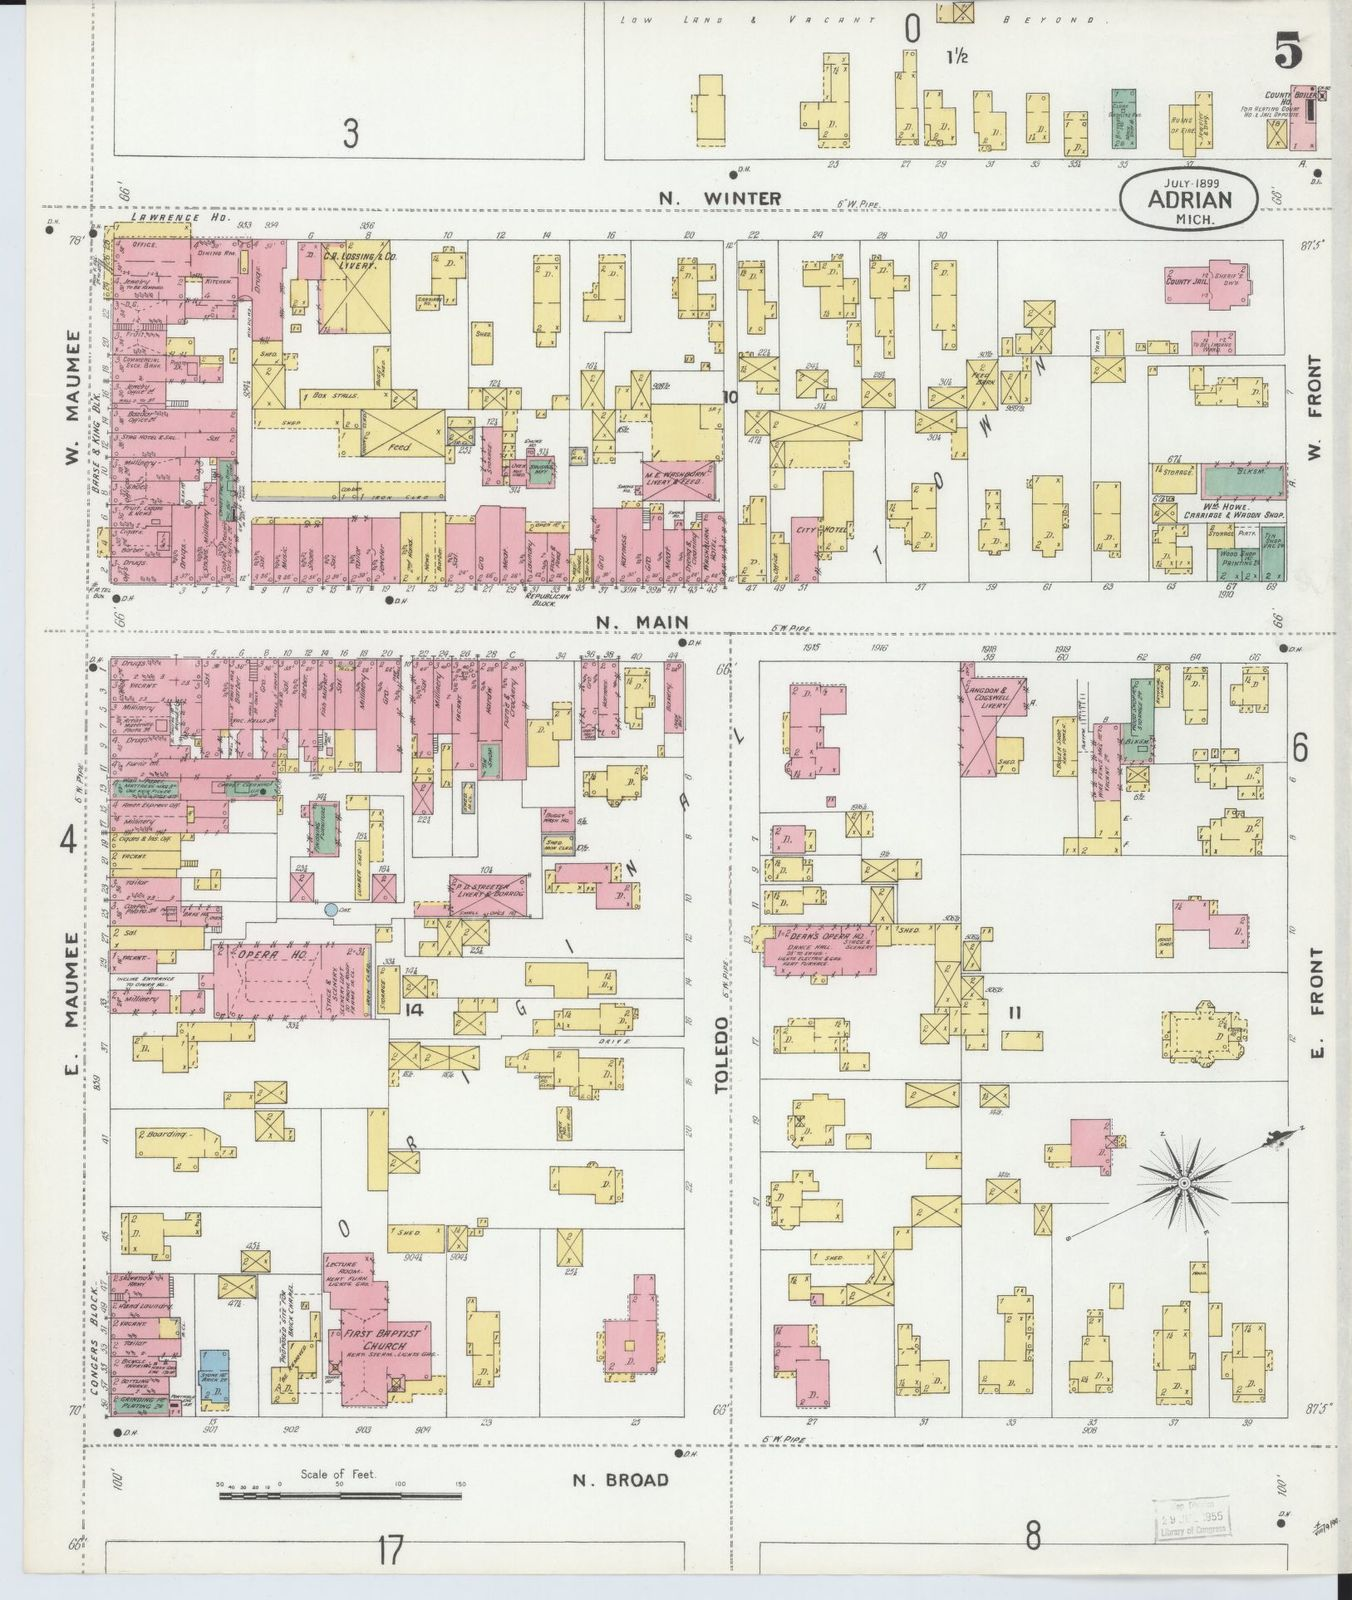 Sanborn Fire Insurance Map from Adrian, Lenawee County, Michigan.